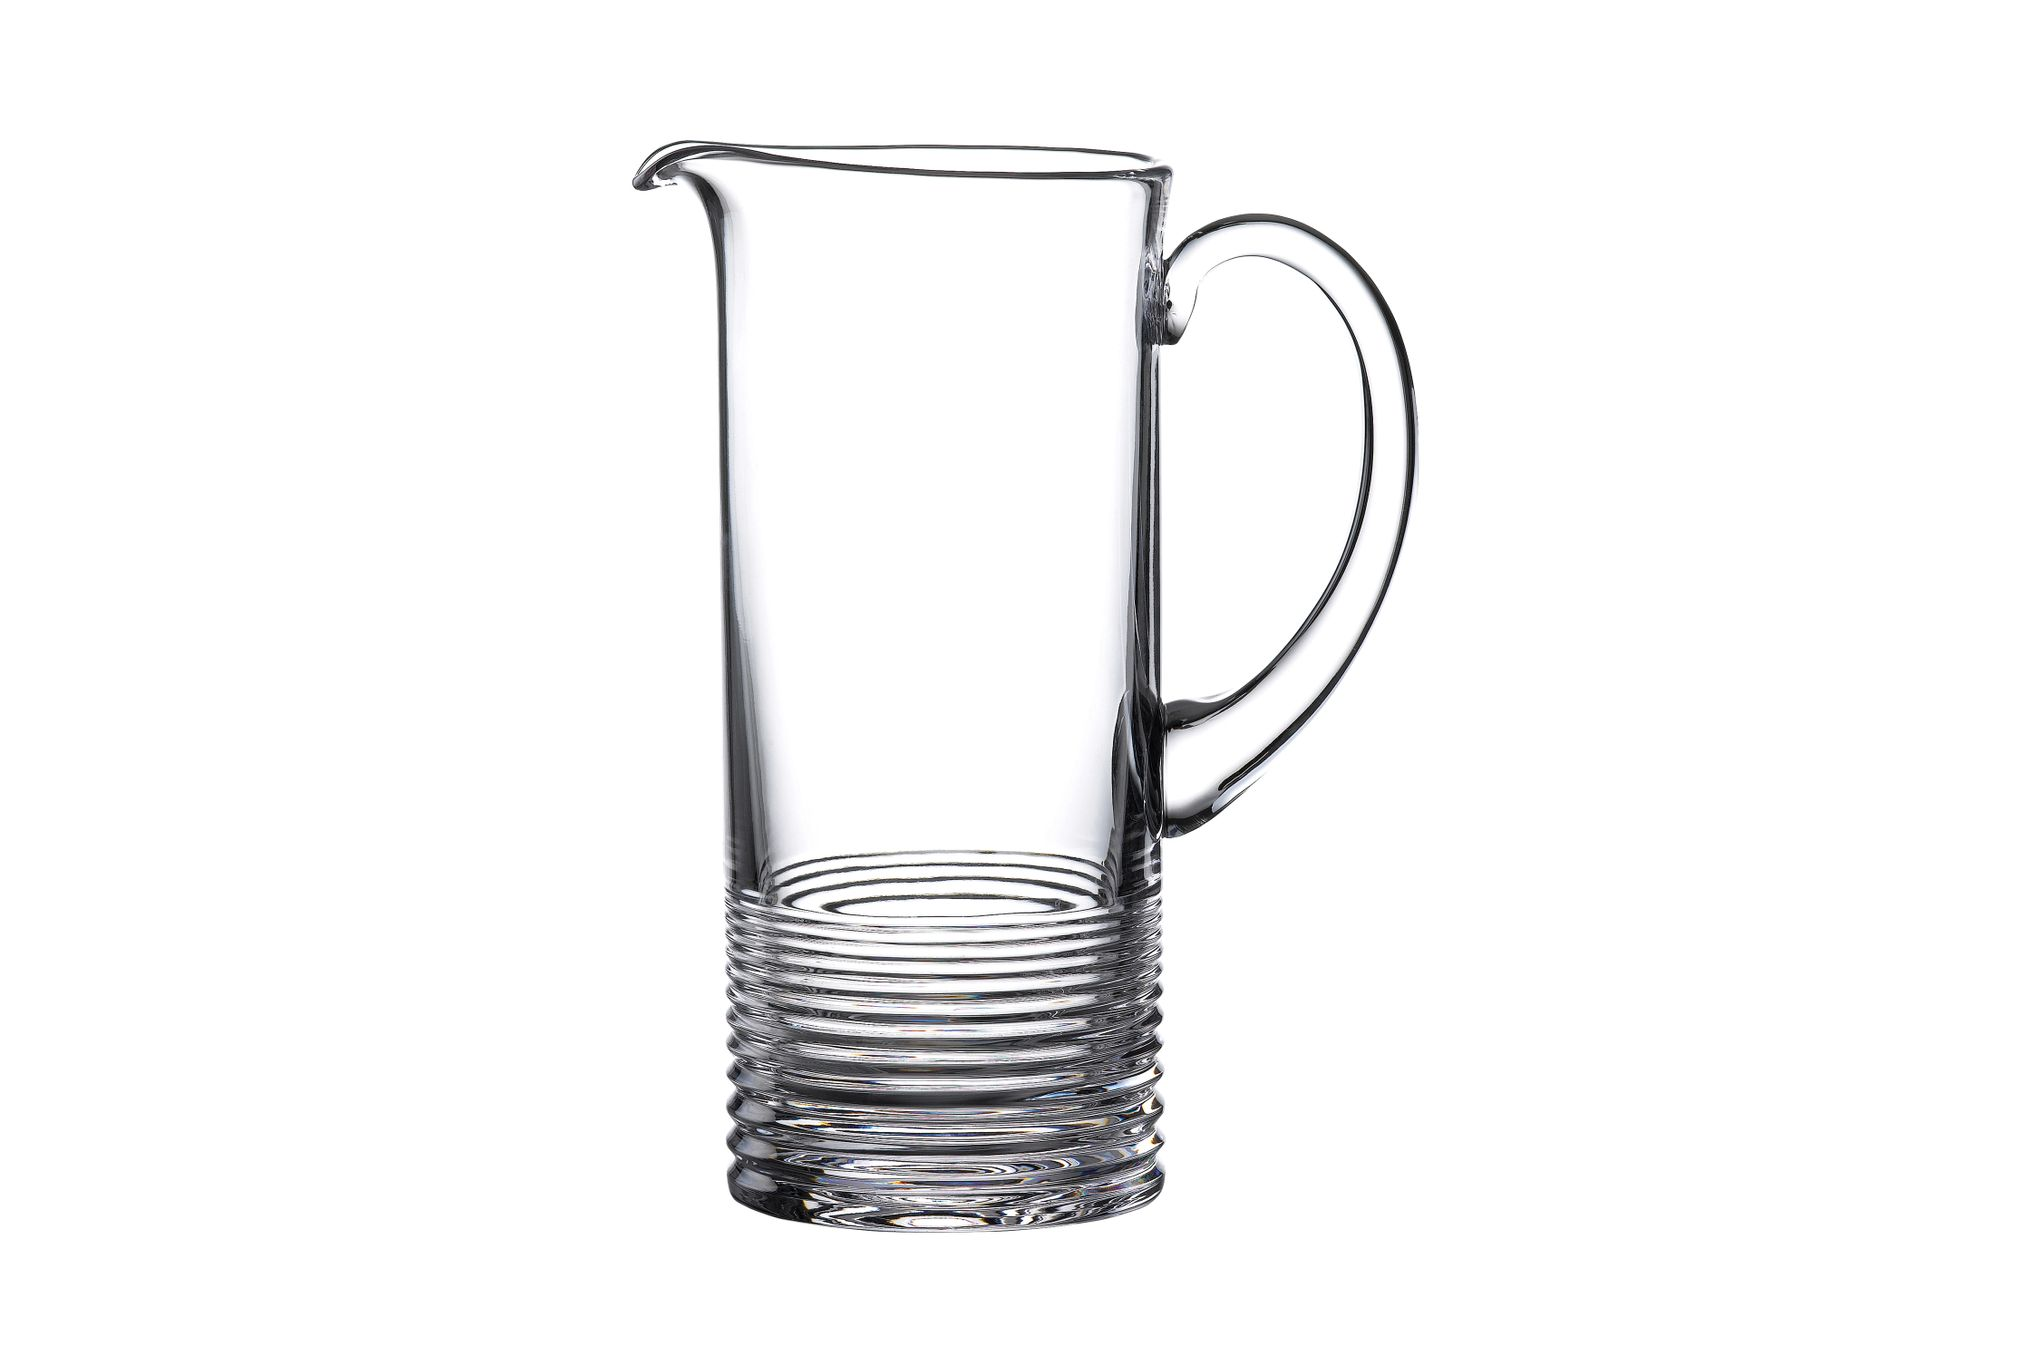 Waterford Mixology Glass Pitcher 1.2l thumb 1